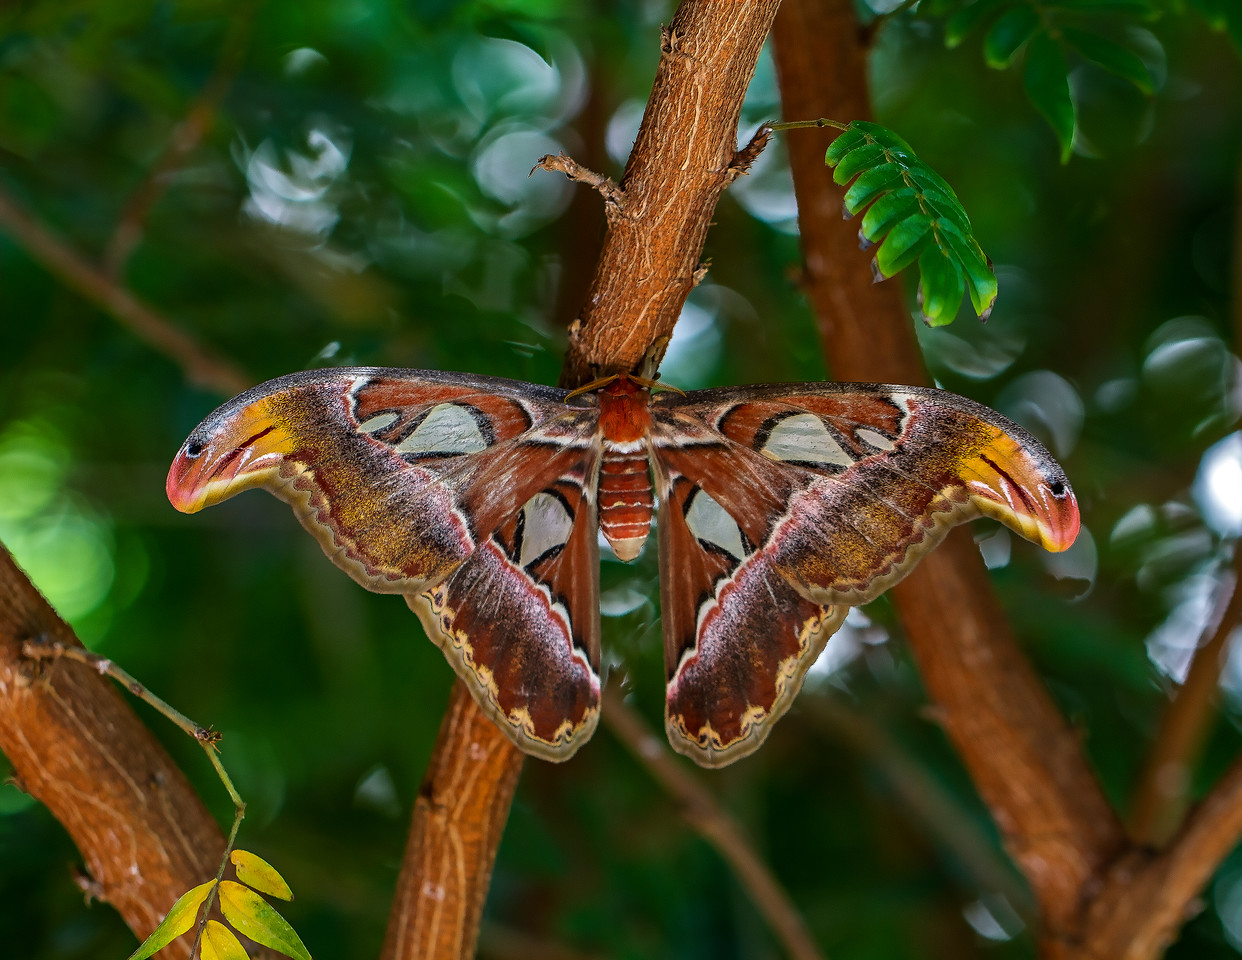 TexasDiscoveryGardens2013-0811 Atlas Moth